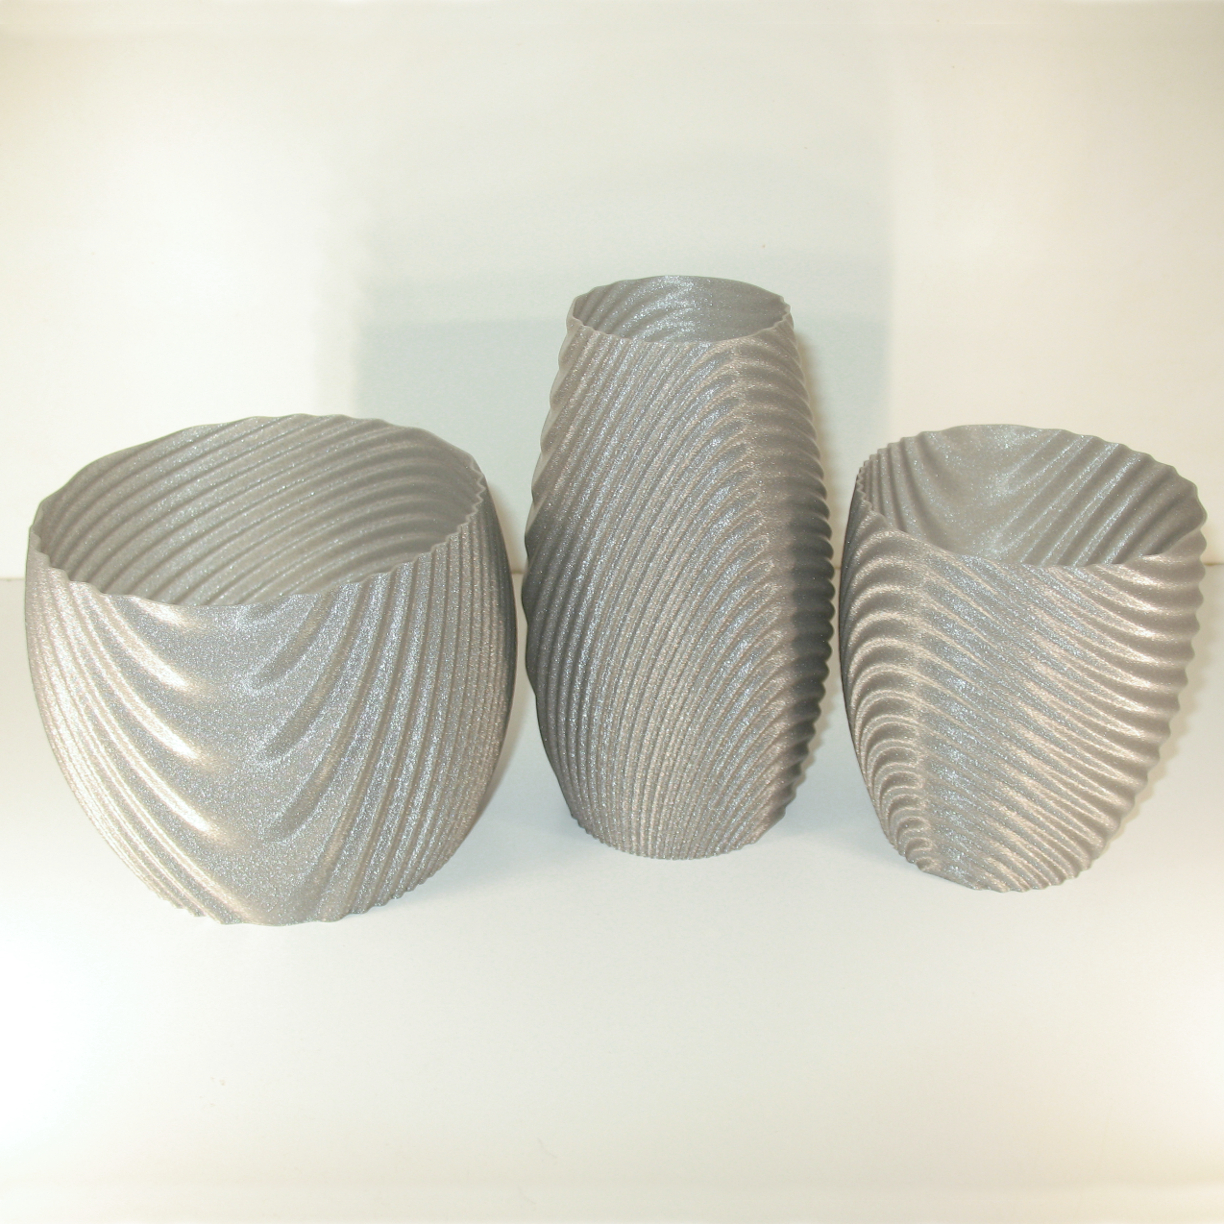 Wavy organic bowl, cups, vase and flower pot. image